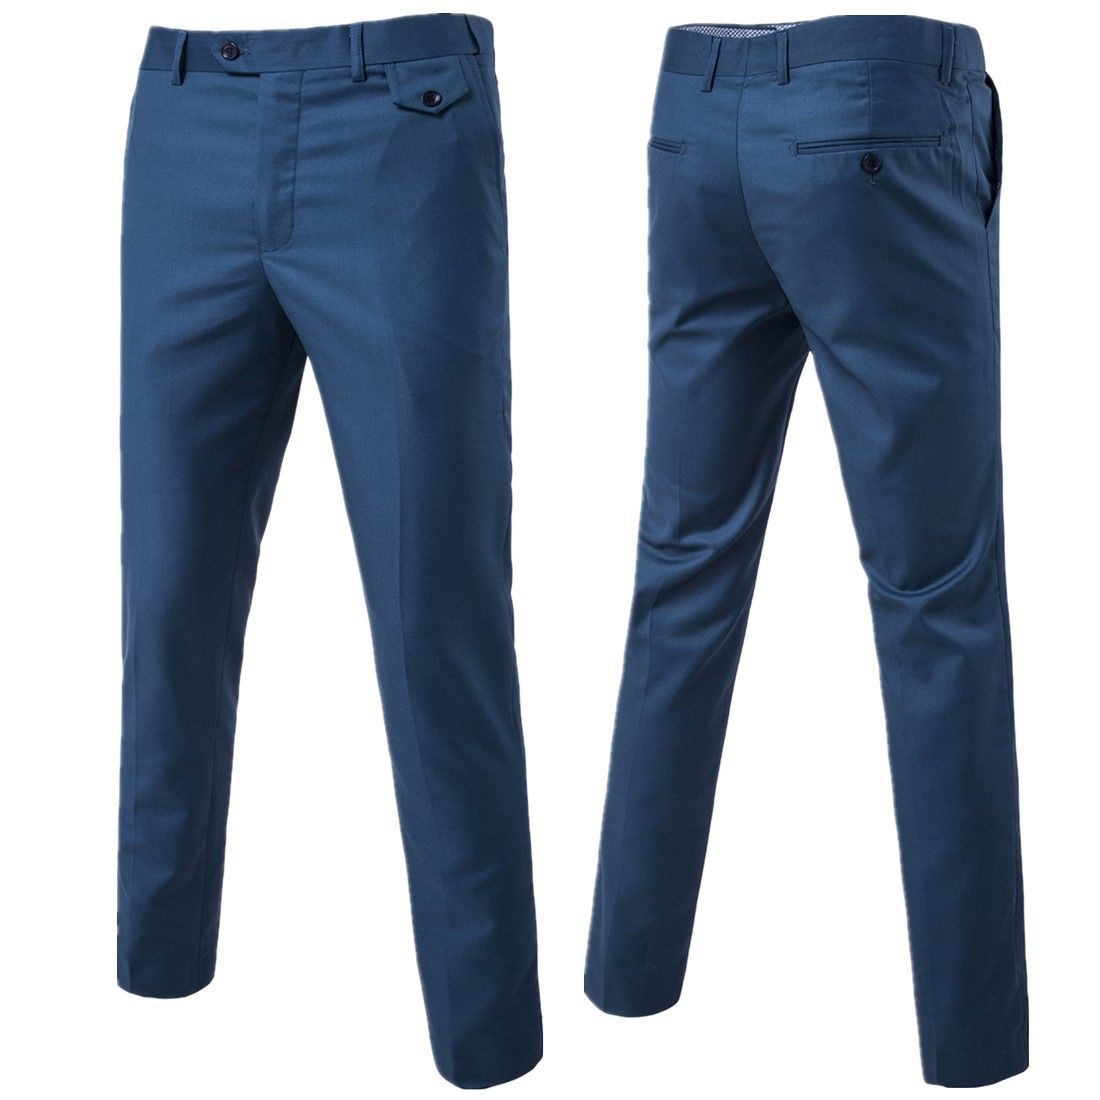 2018 New Fashion Mens Business Formal Suit Pants Slim Fit Men's new casual business trousers